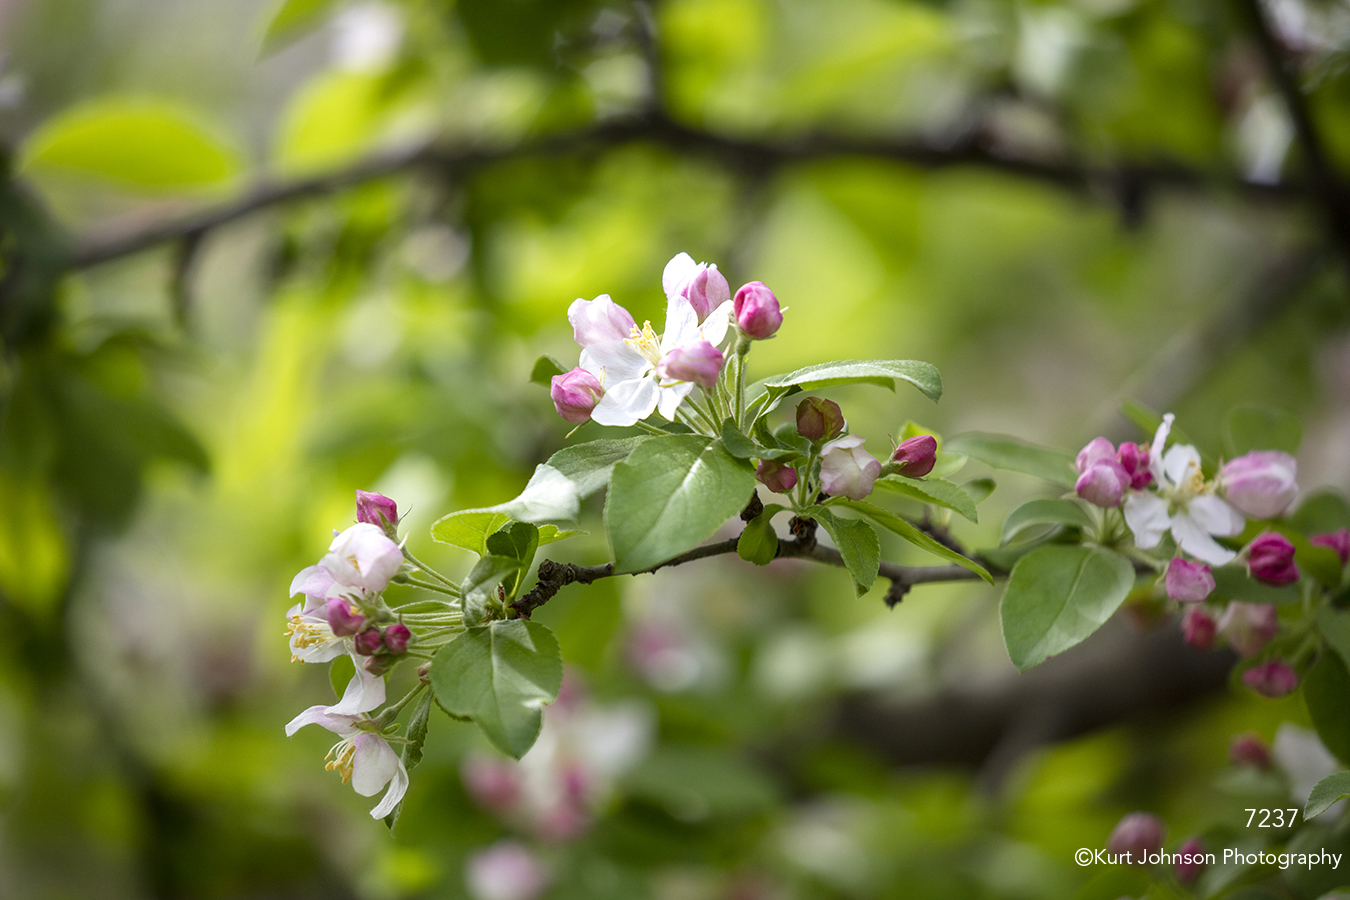 flowers white flowering tree buds blooming pink